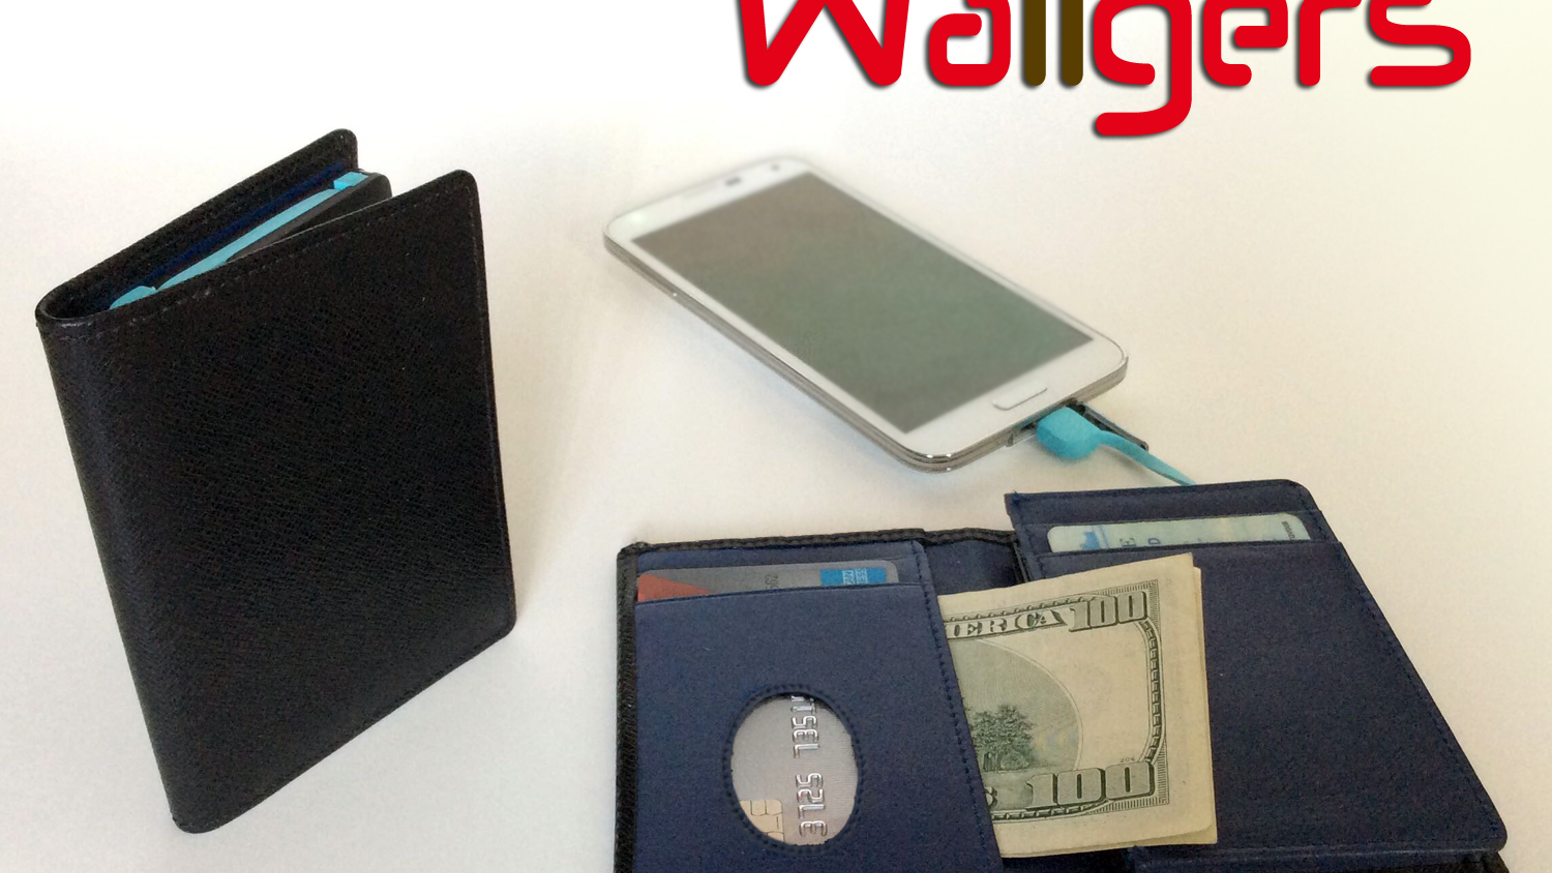 1st & ONLY leather wallet with built-in battery and cable to charge BOTH Apple + Android phones. Real RFID shields. Assembled in USA.     Missed our campaign? Pre-order below: